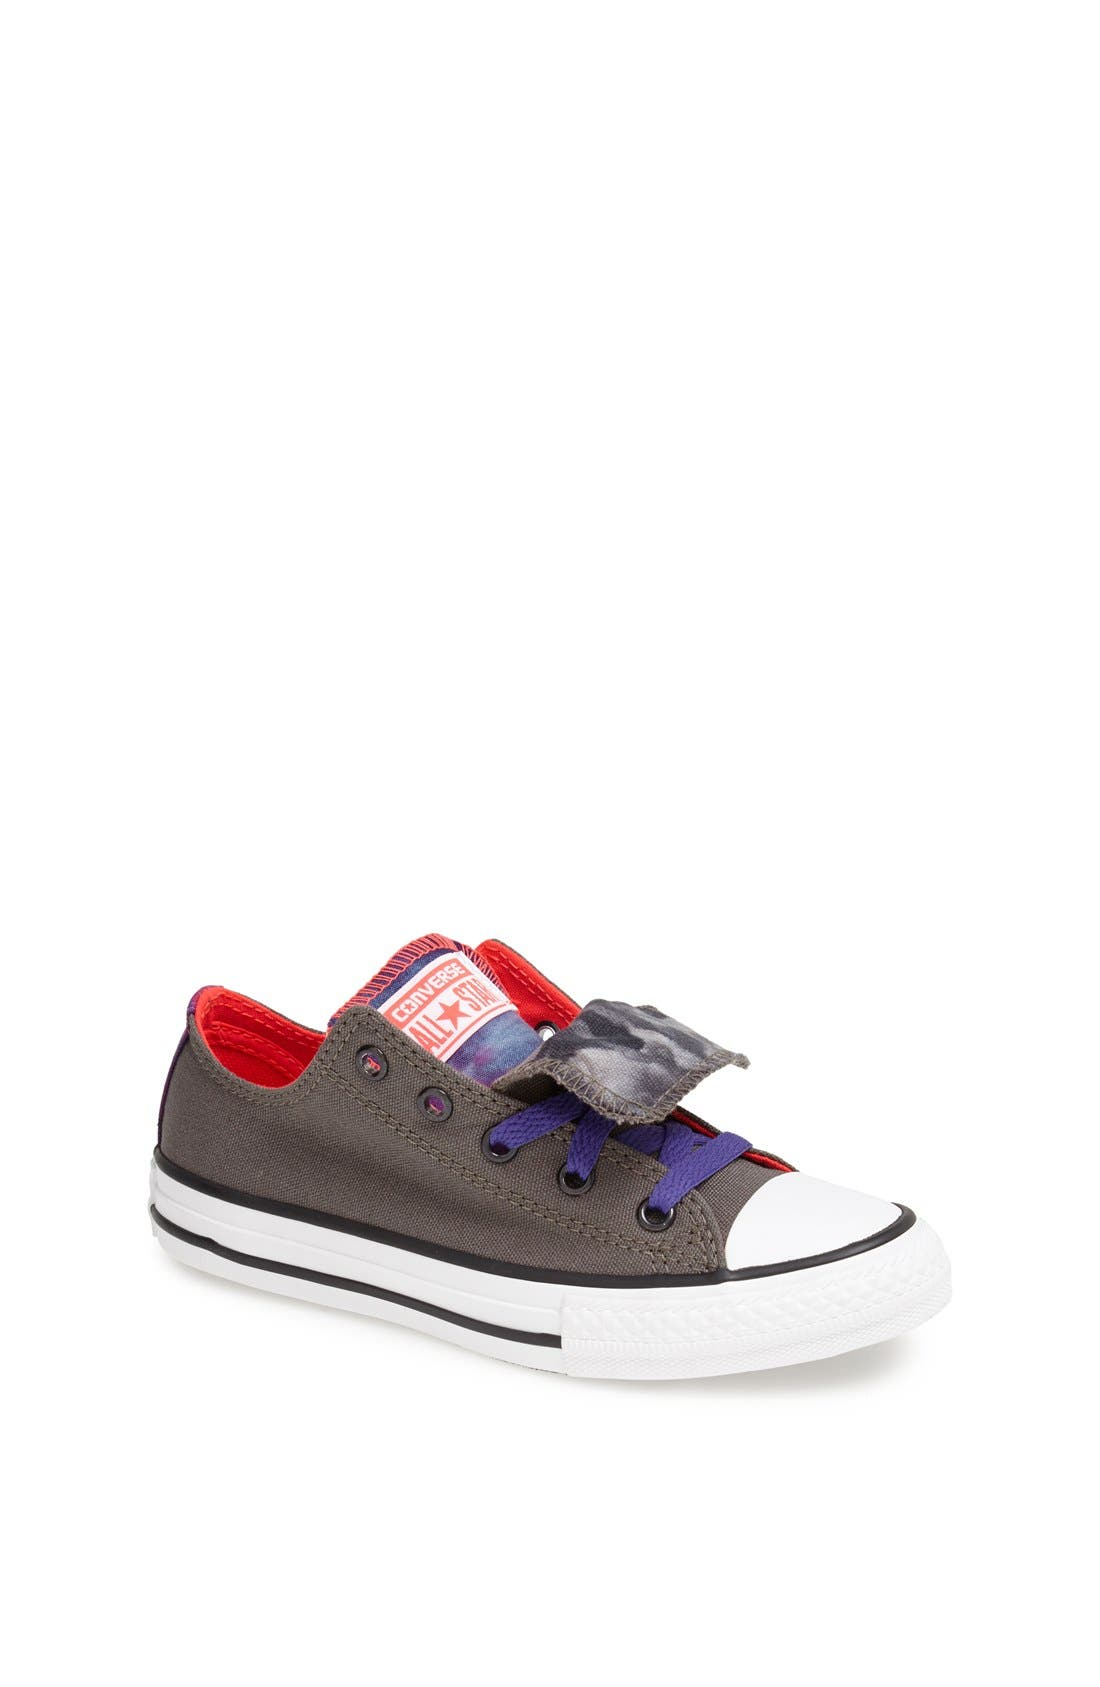 Alternate Image 1 Selected - Converse Chuck Taylor® Double Zip Sneaker (Toddler, Little Kid & Big Kid)